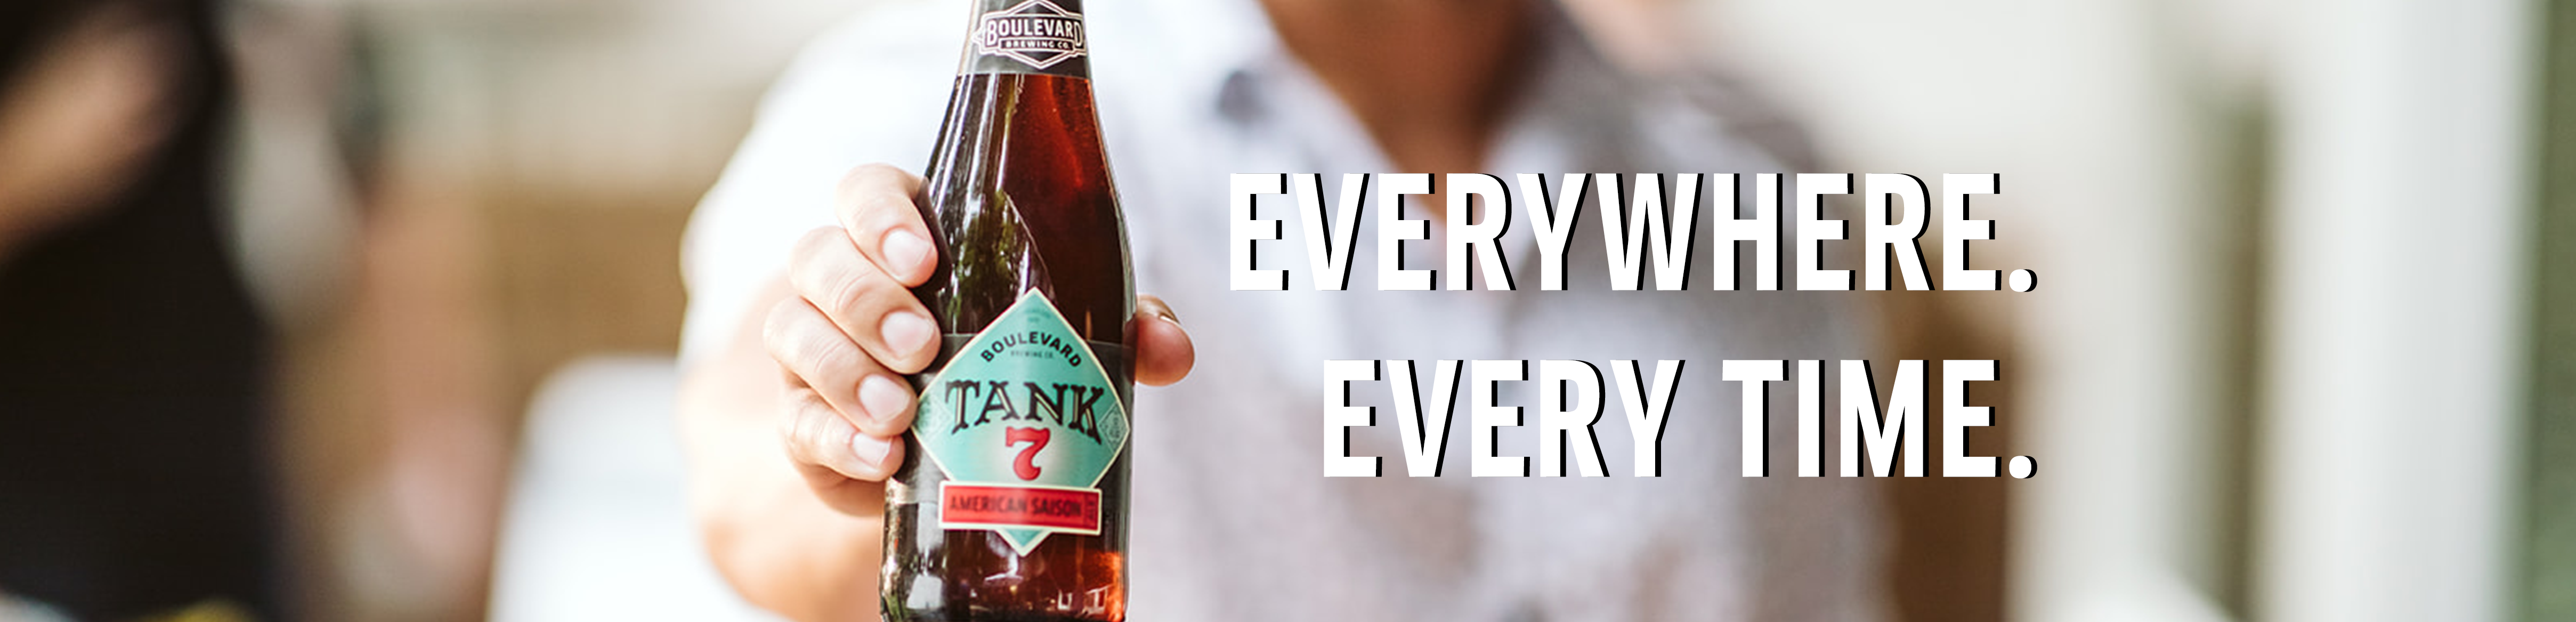 Tank 7 Everywhere Every Time